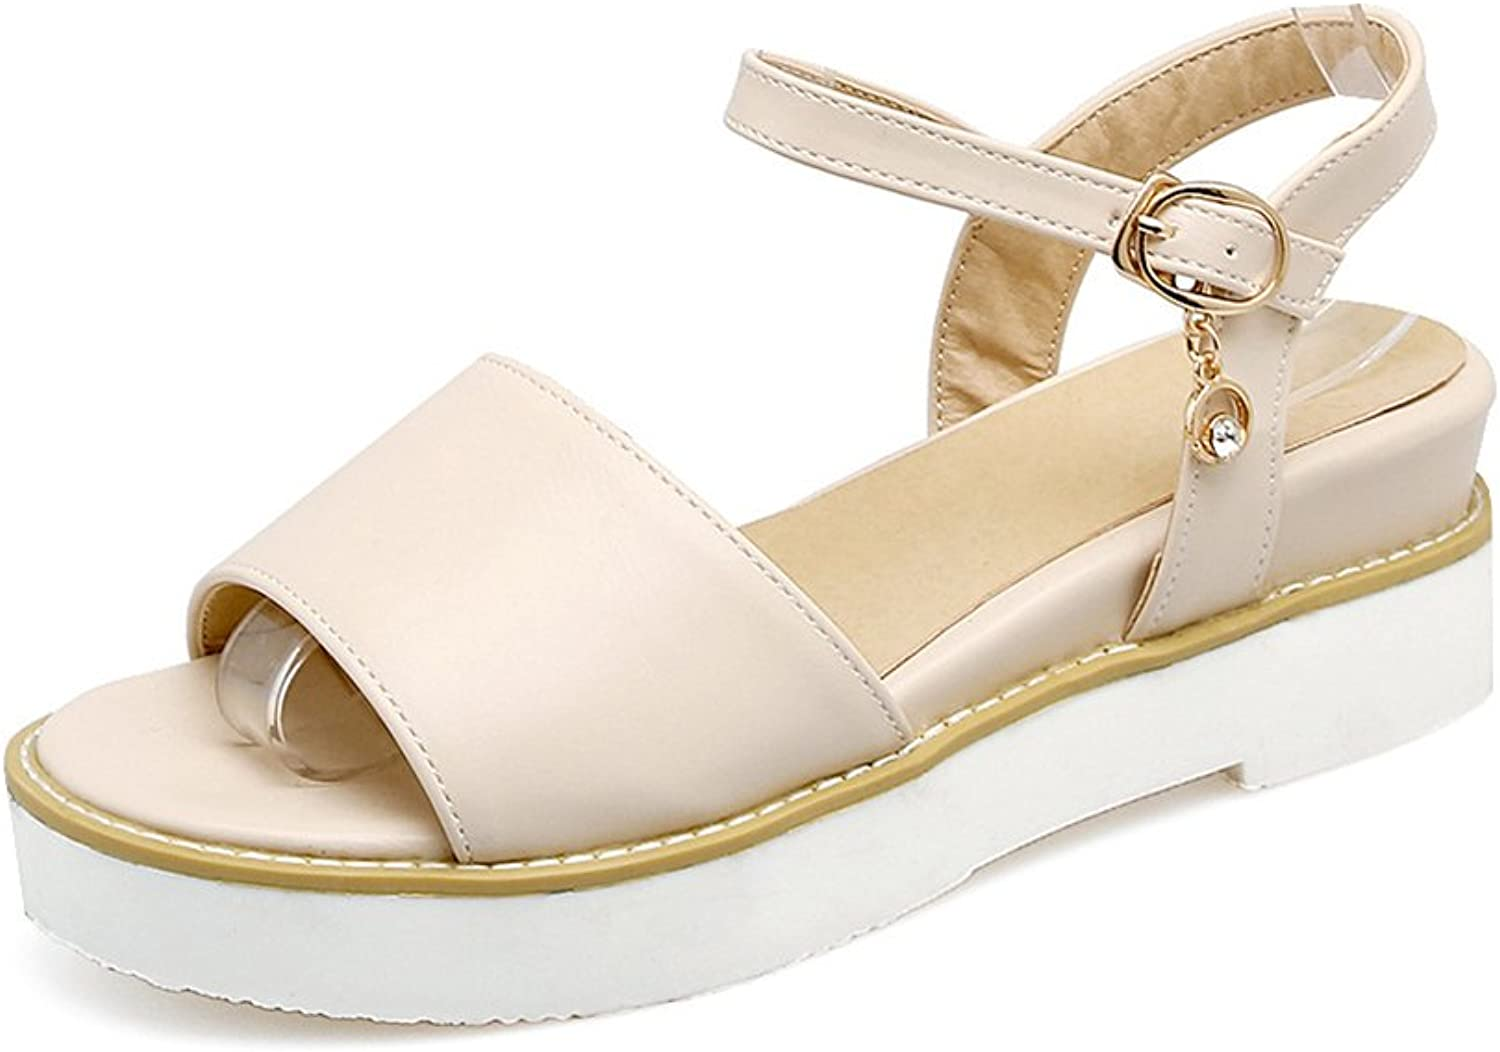 Batiu Womens Leather Anti-Skid Ankle Strap Summer Sandals Lady Sandles